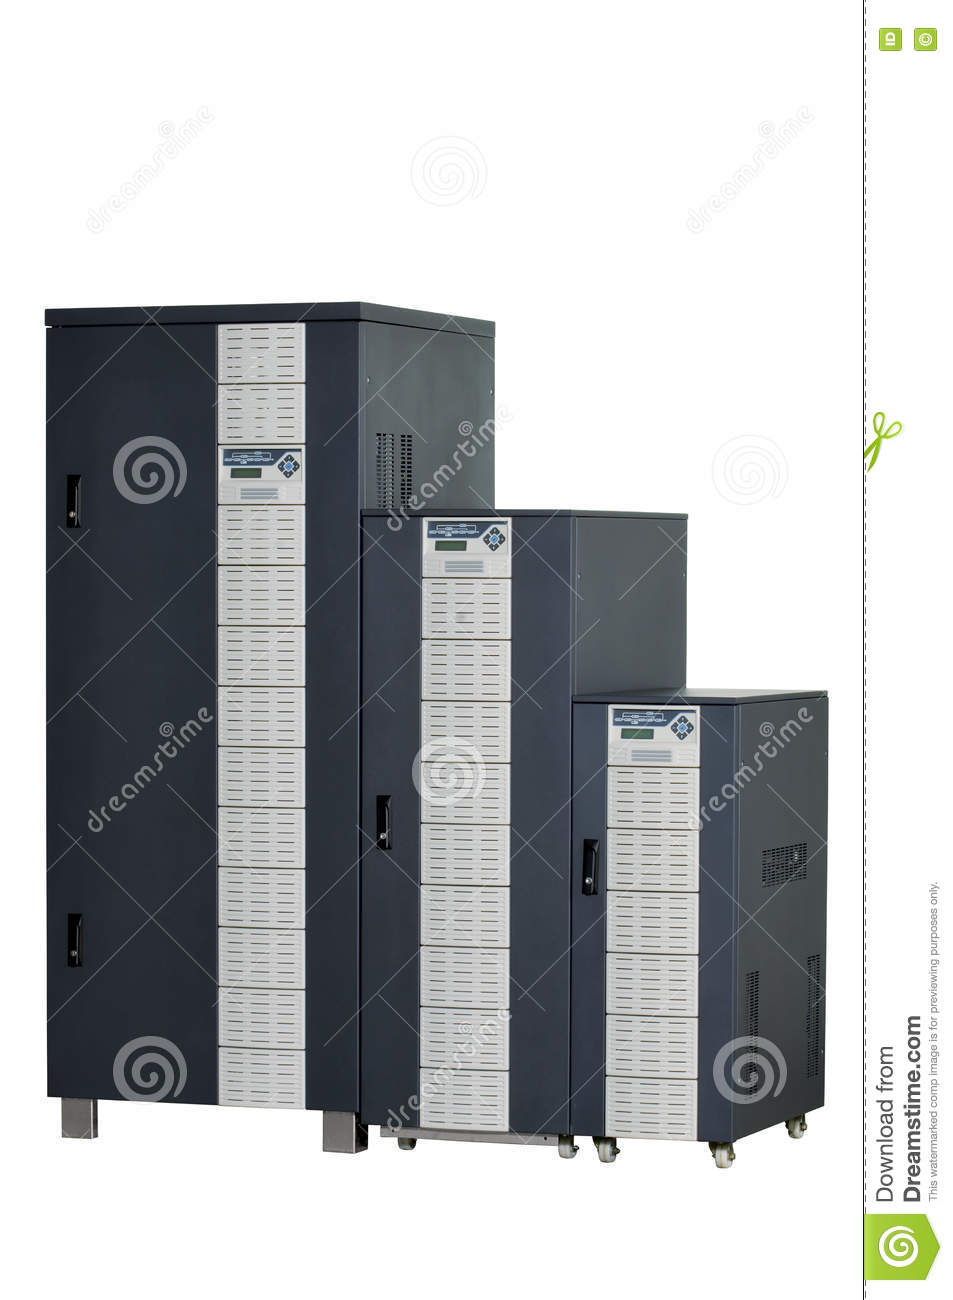 Electrical Ups And Control Panel Stock Image - Image of switch ...